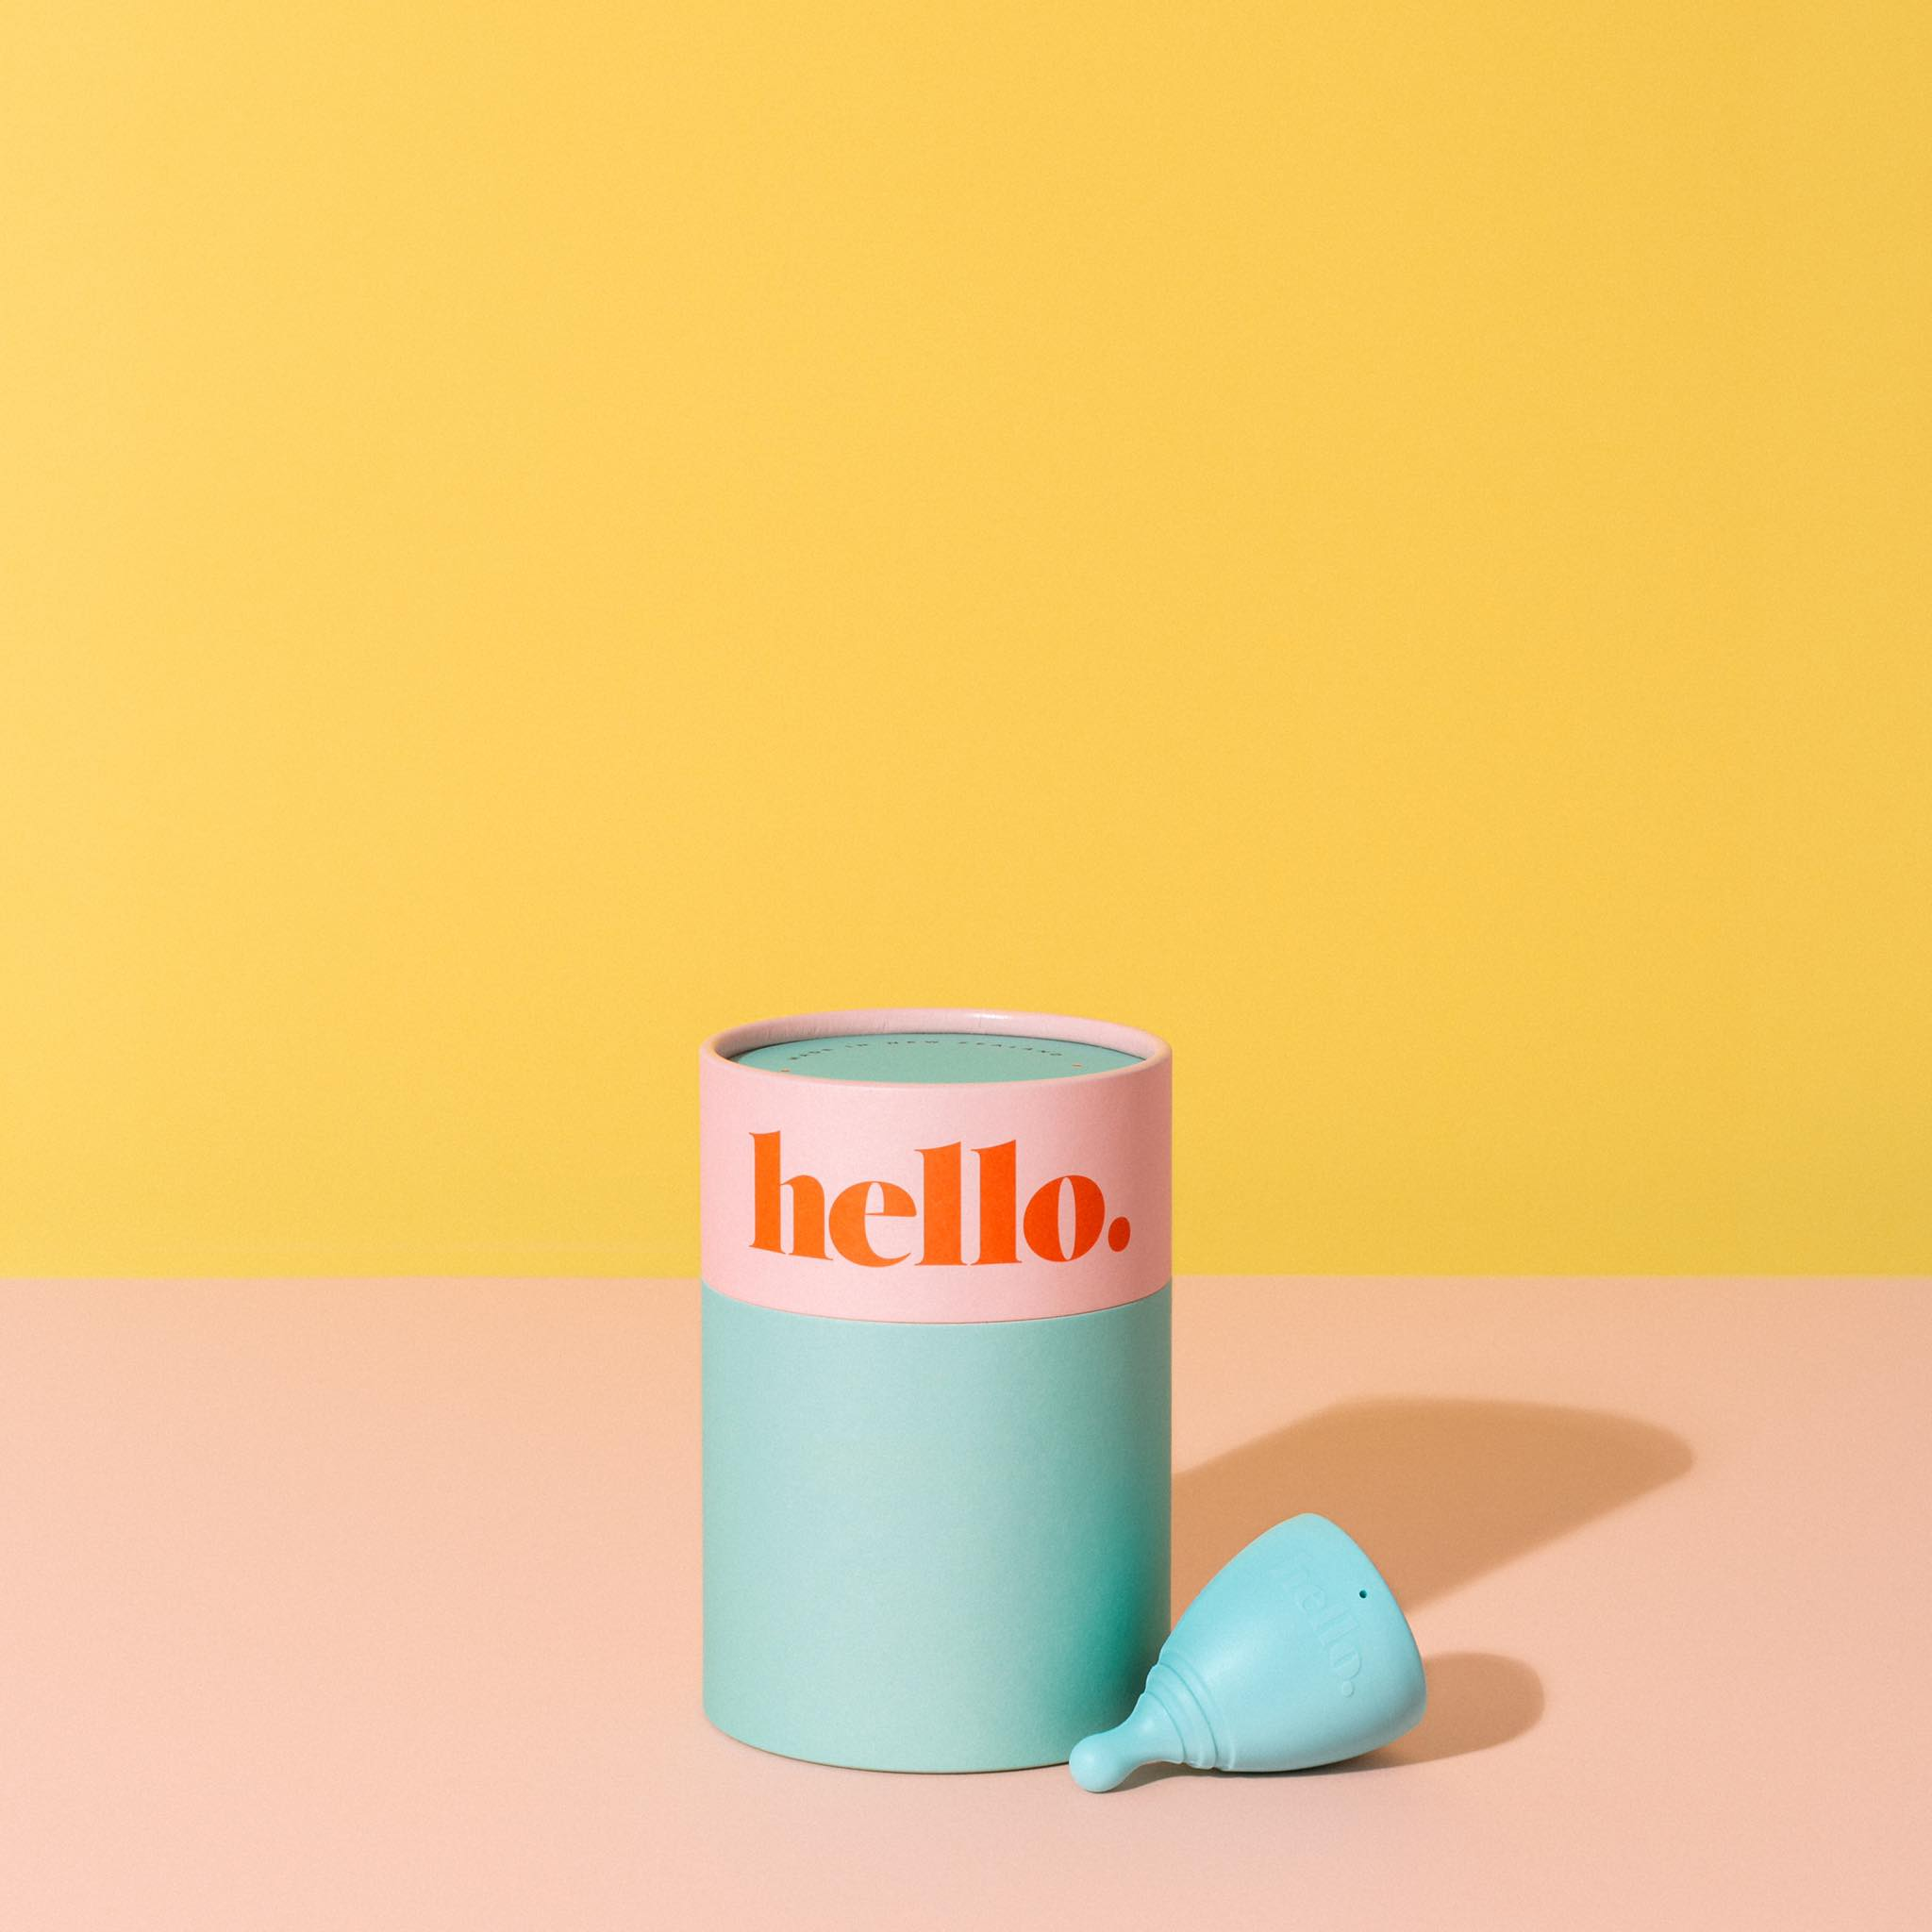 The Hello Cup Small Medium Menstrual Cup - Sustainable Period Care